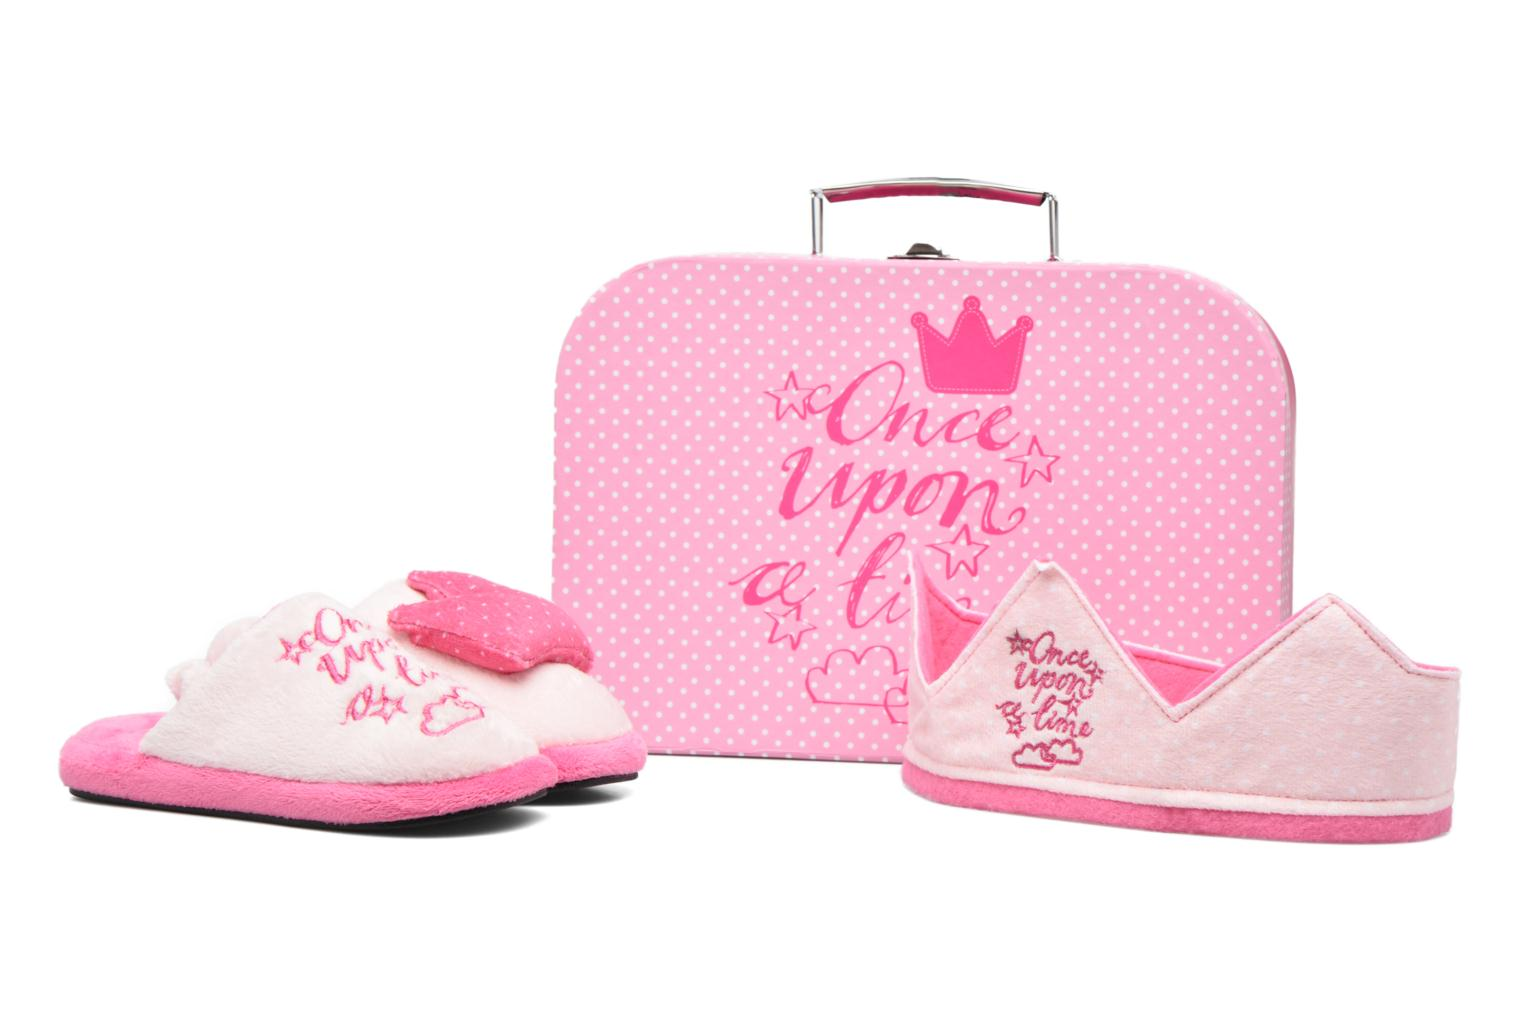 Chaussons Gioseppo 40773 Rose vue 3/4